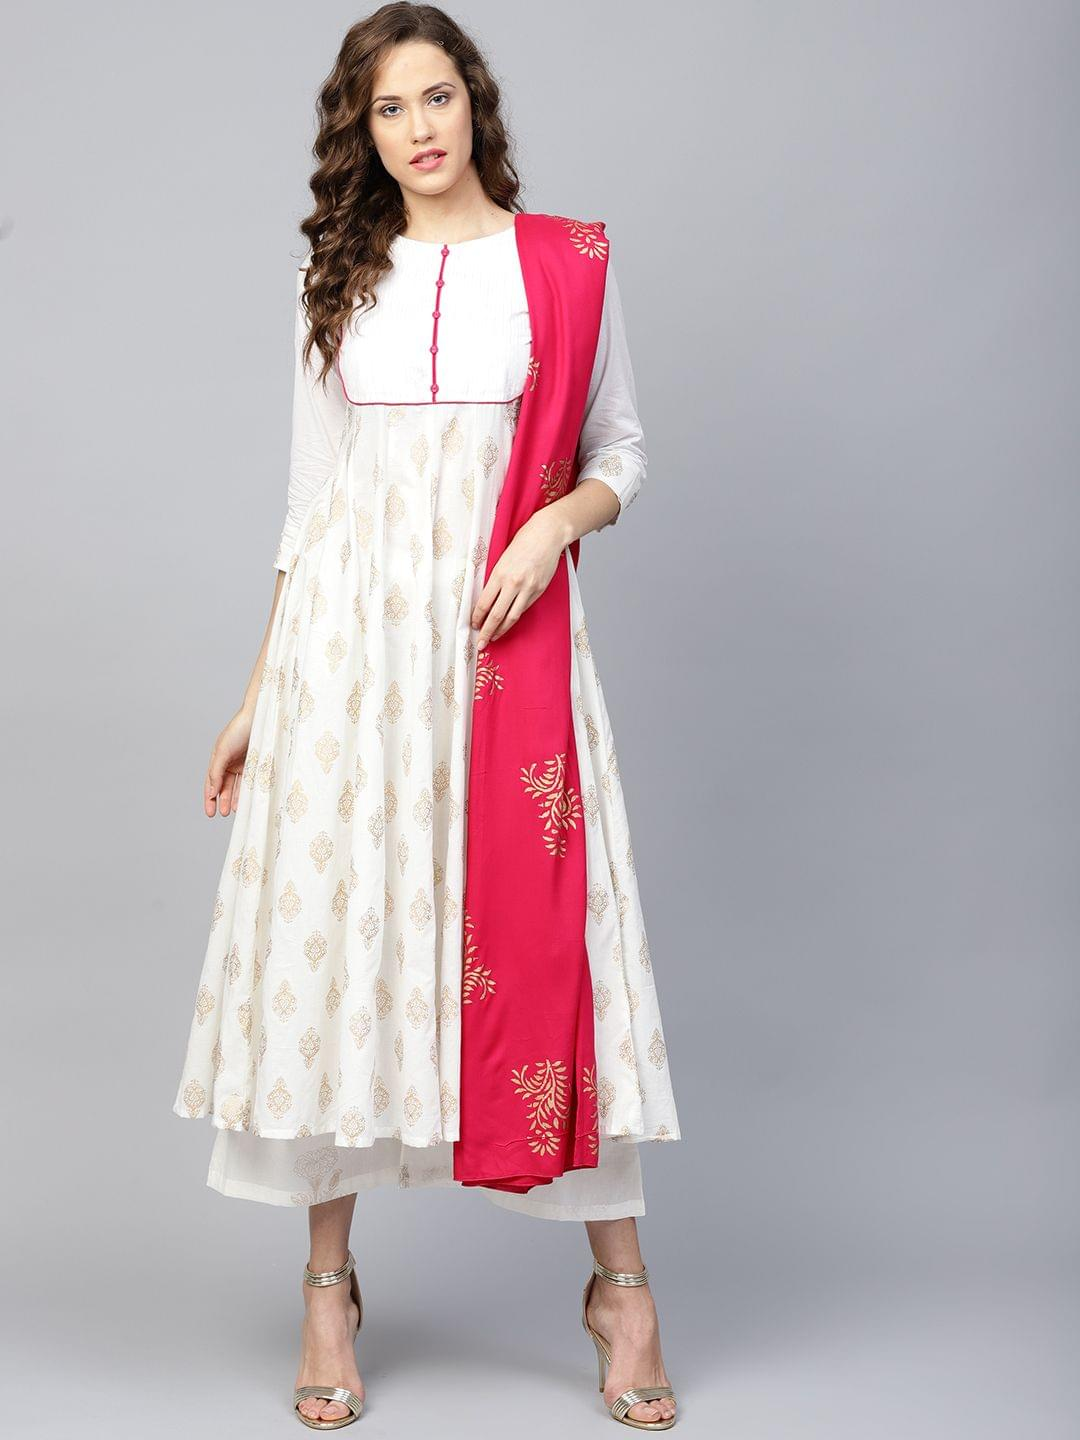 Yufta Women White & Pink Printed Kurta with Palazzos & Dupatta